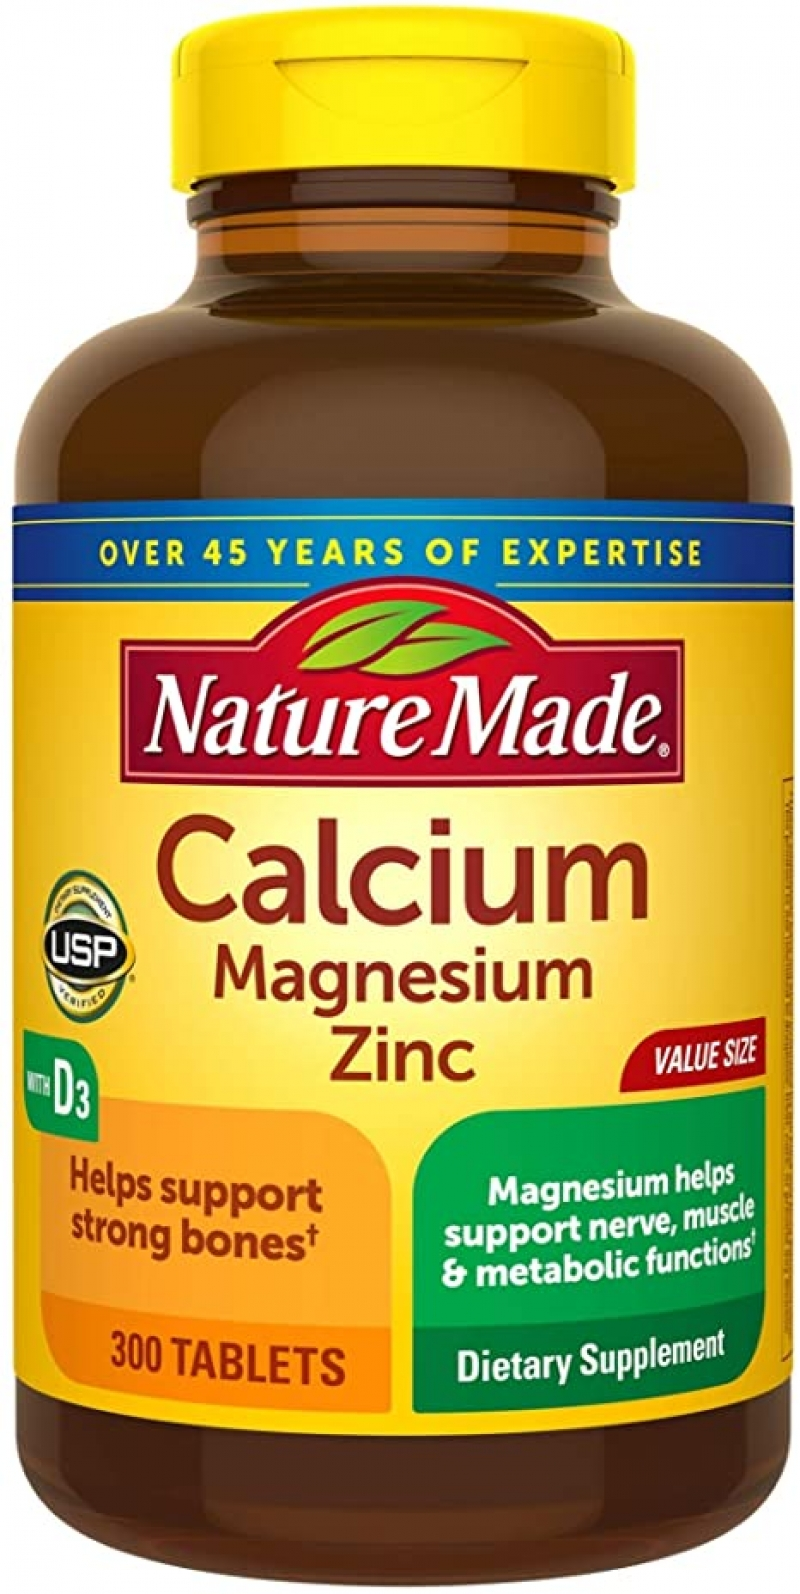 ihocon: Nature Made Calcium, Magnesium Oxide, Zinc with Vitamin D3 helps support Bone Strength, Tablets, 300 Count   鈣片